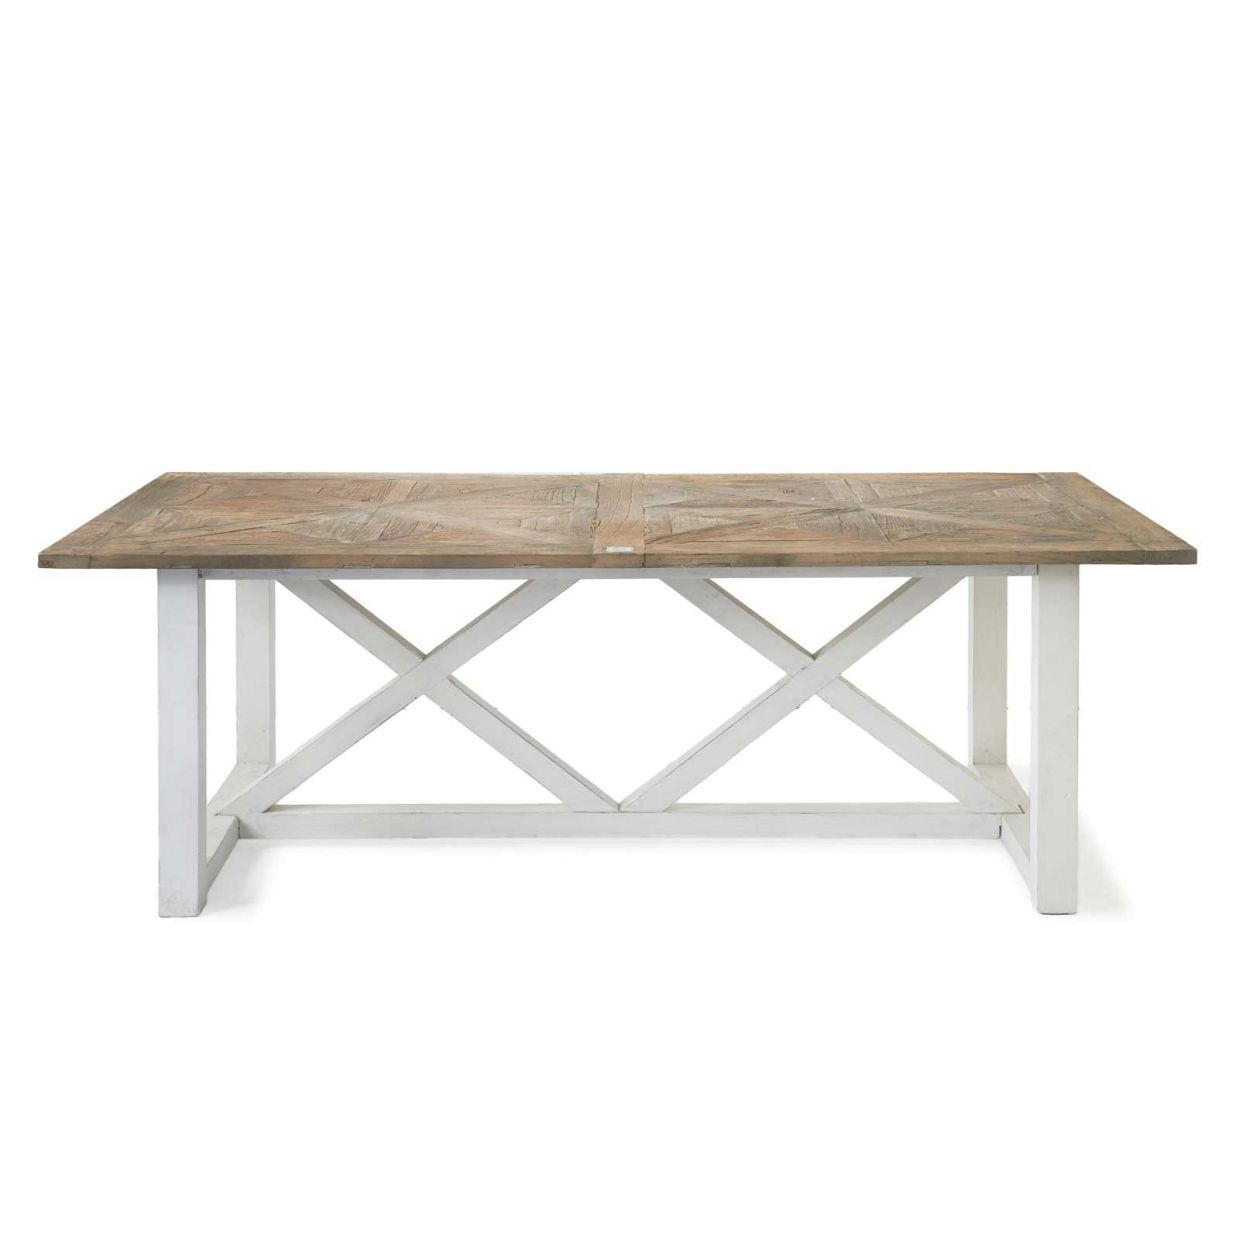 Chateau Chassigny Dining Table, 220x100 cm Tische